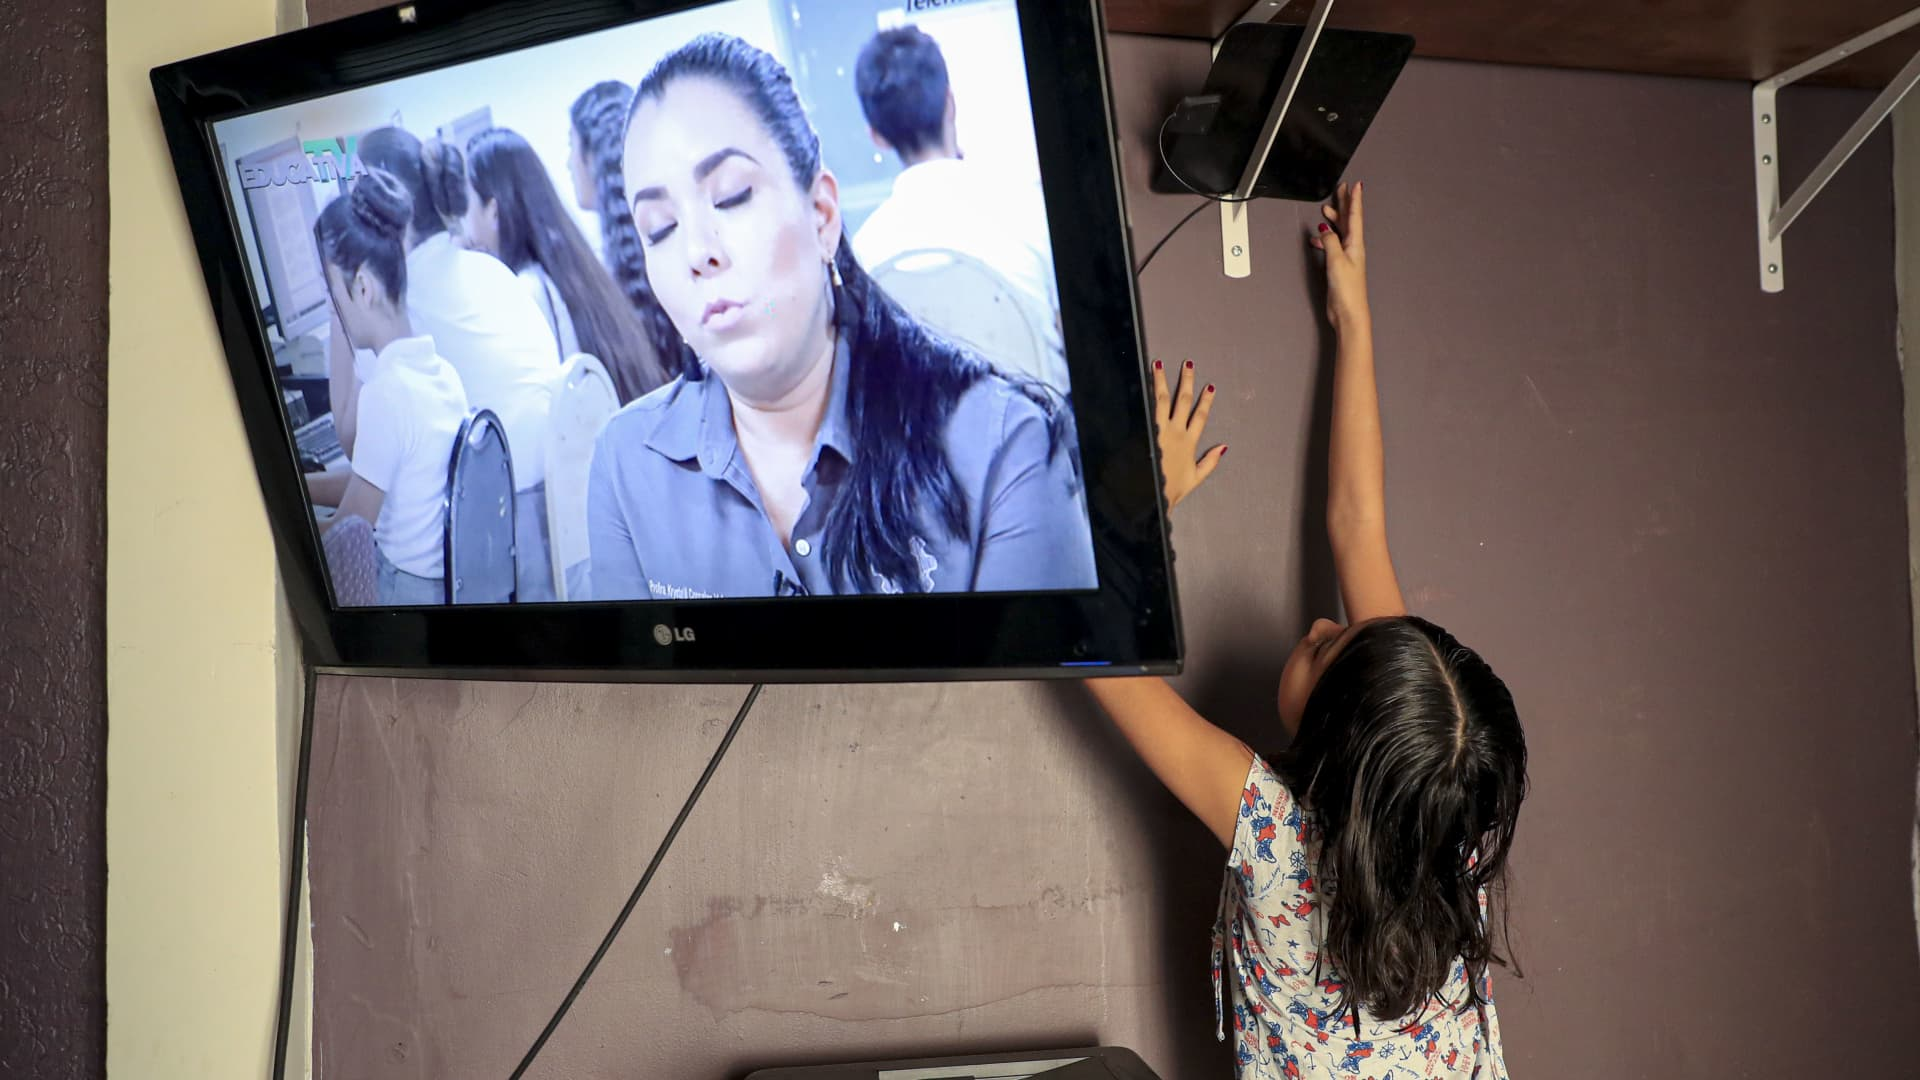 A young girl adjusts the antenna of a television in an attempt to obtain a digital signal.